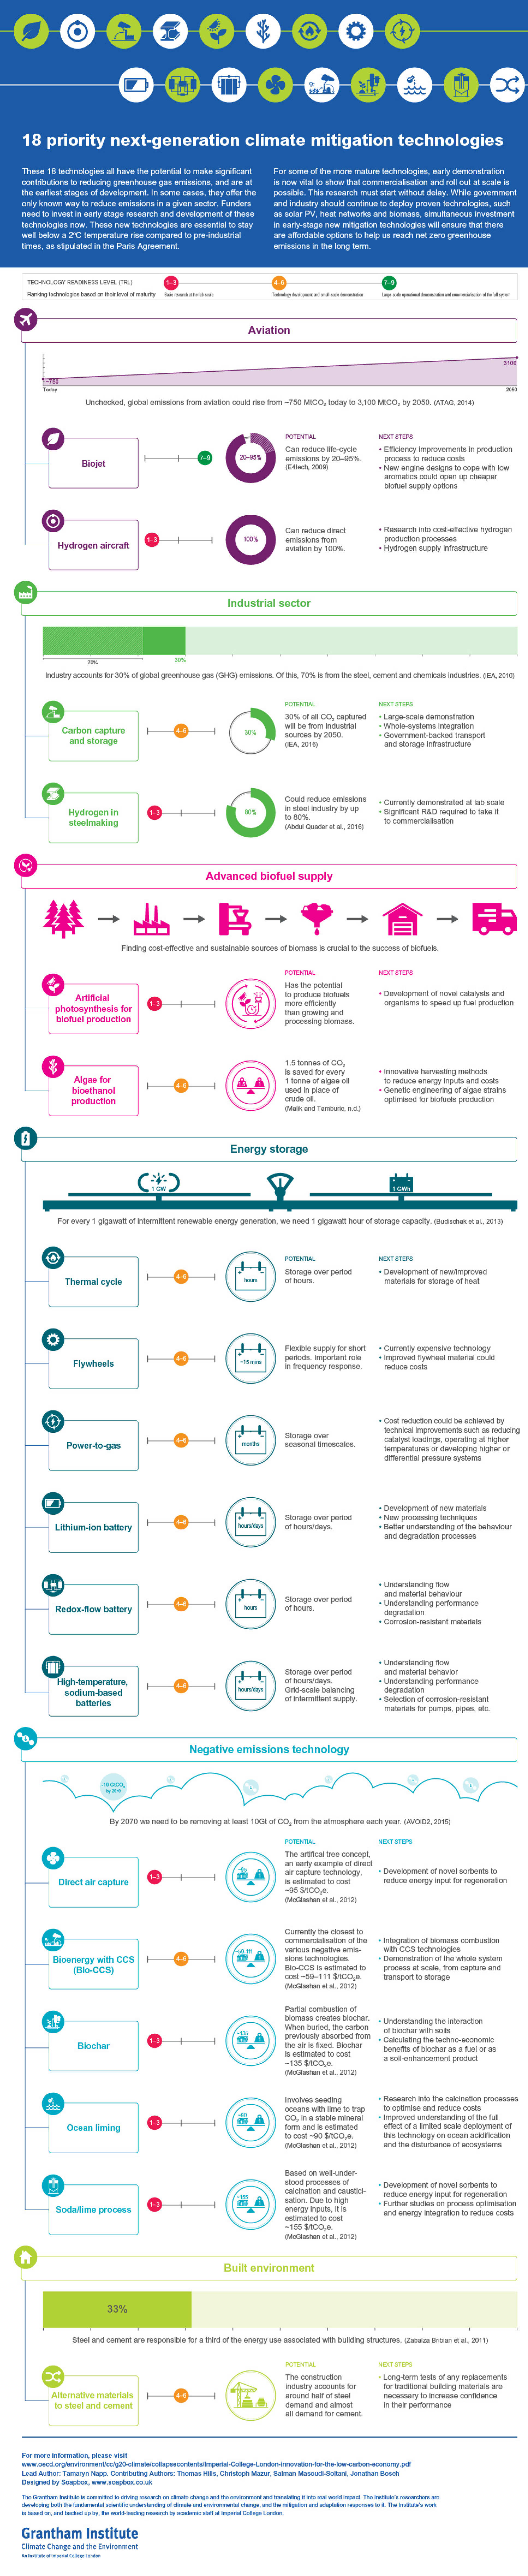 An infographic showing 18 technologies that could make significant contributions to reducing greenhouse gas emissions.